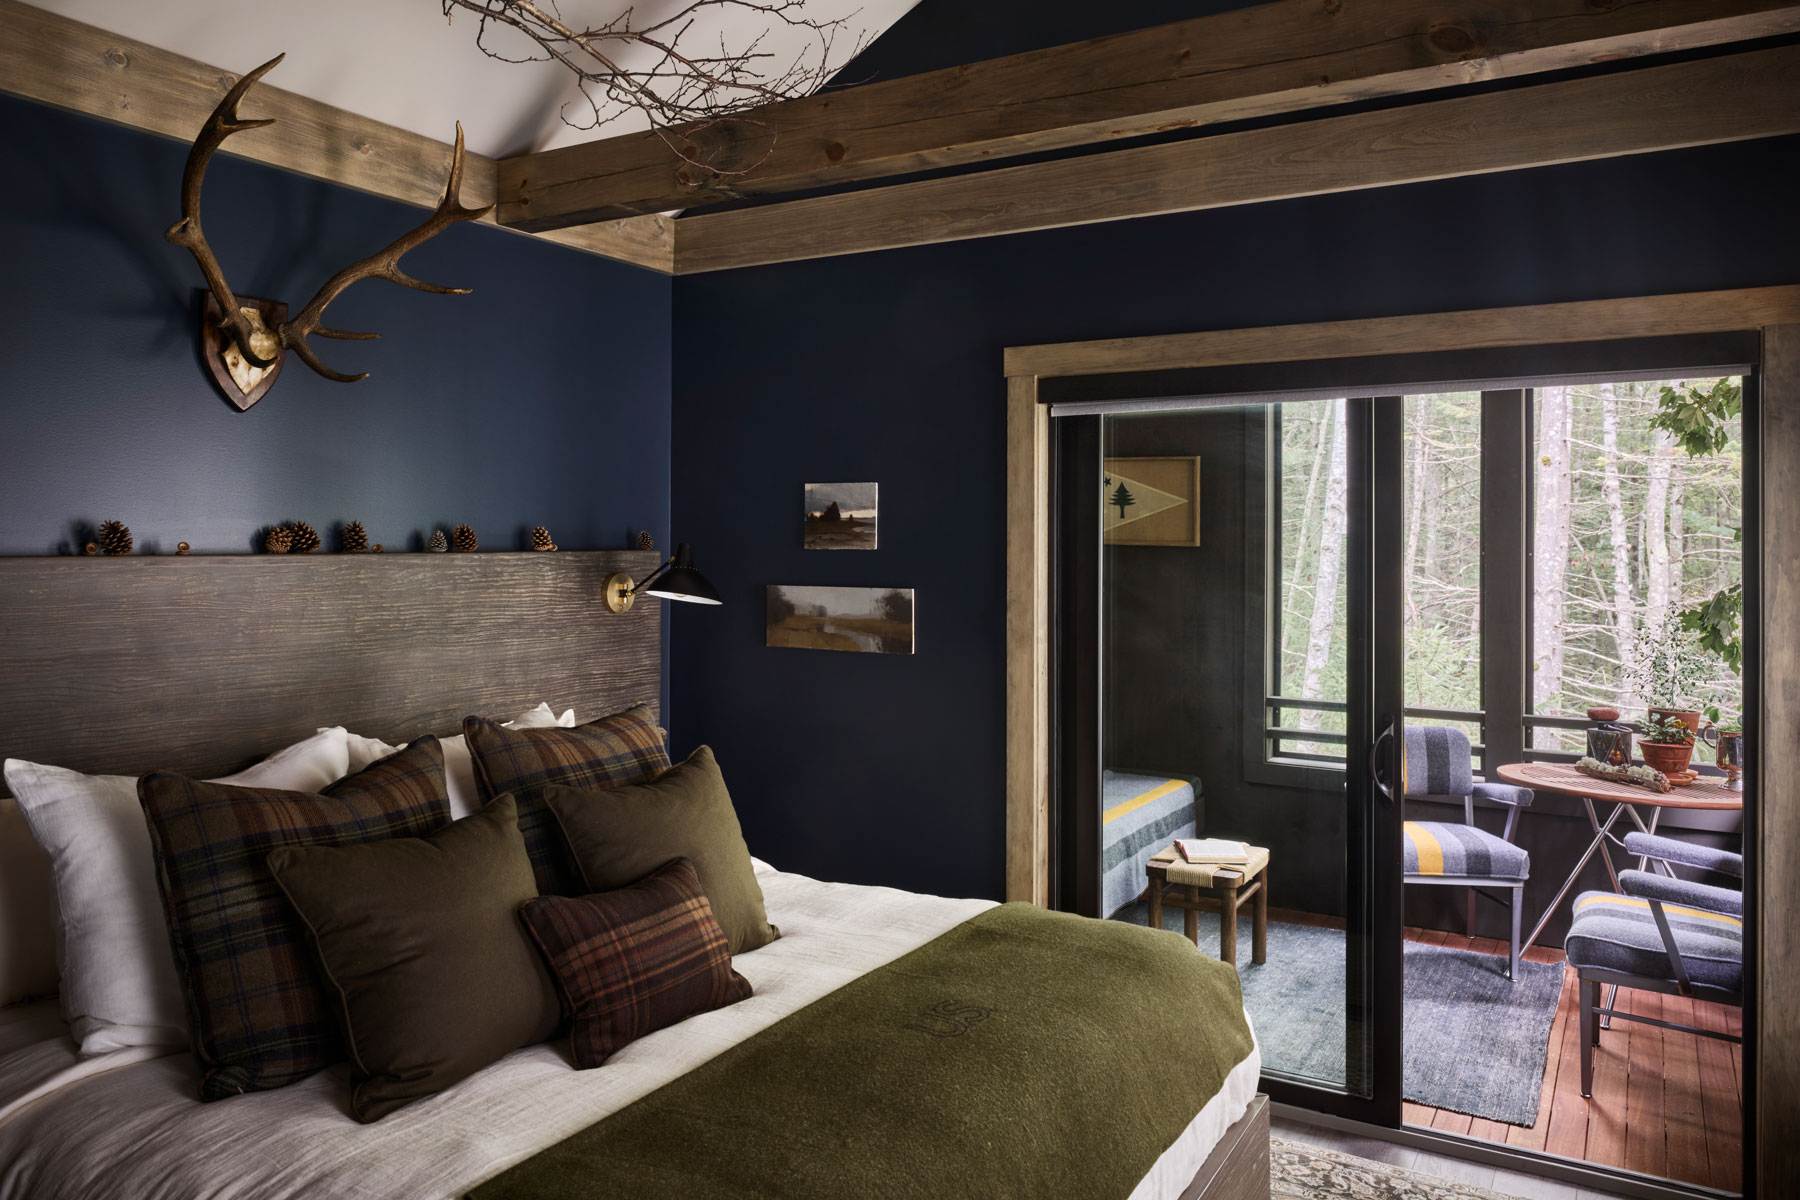 Dark blue room with wooden bed and antlers on wall by sliding glass door to living room